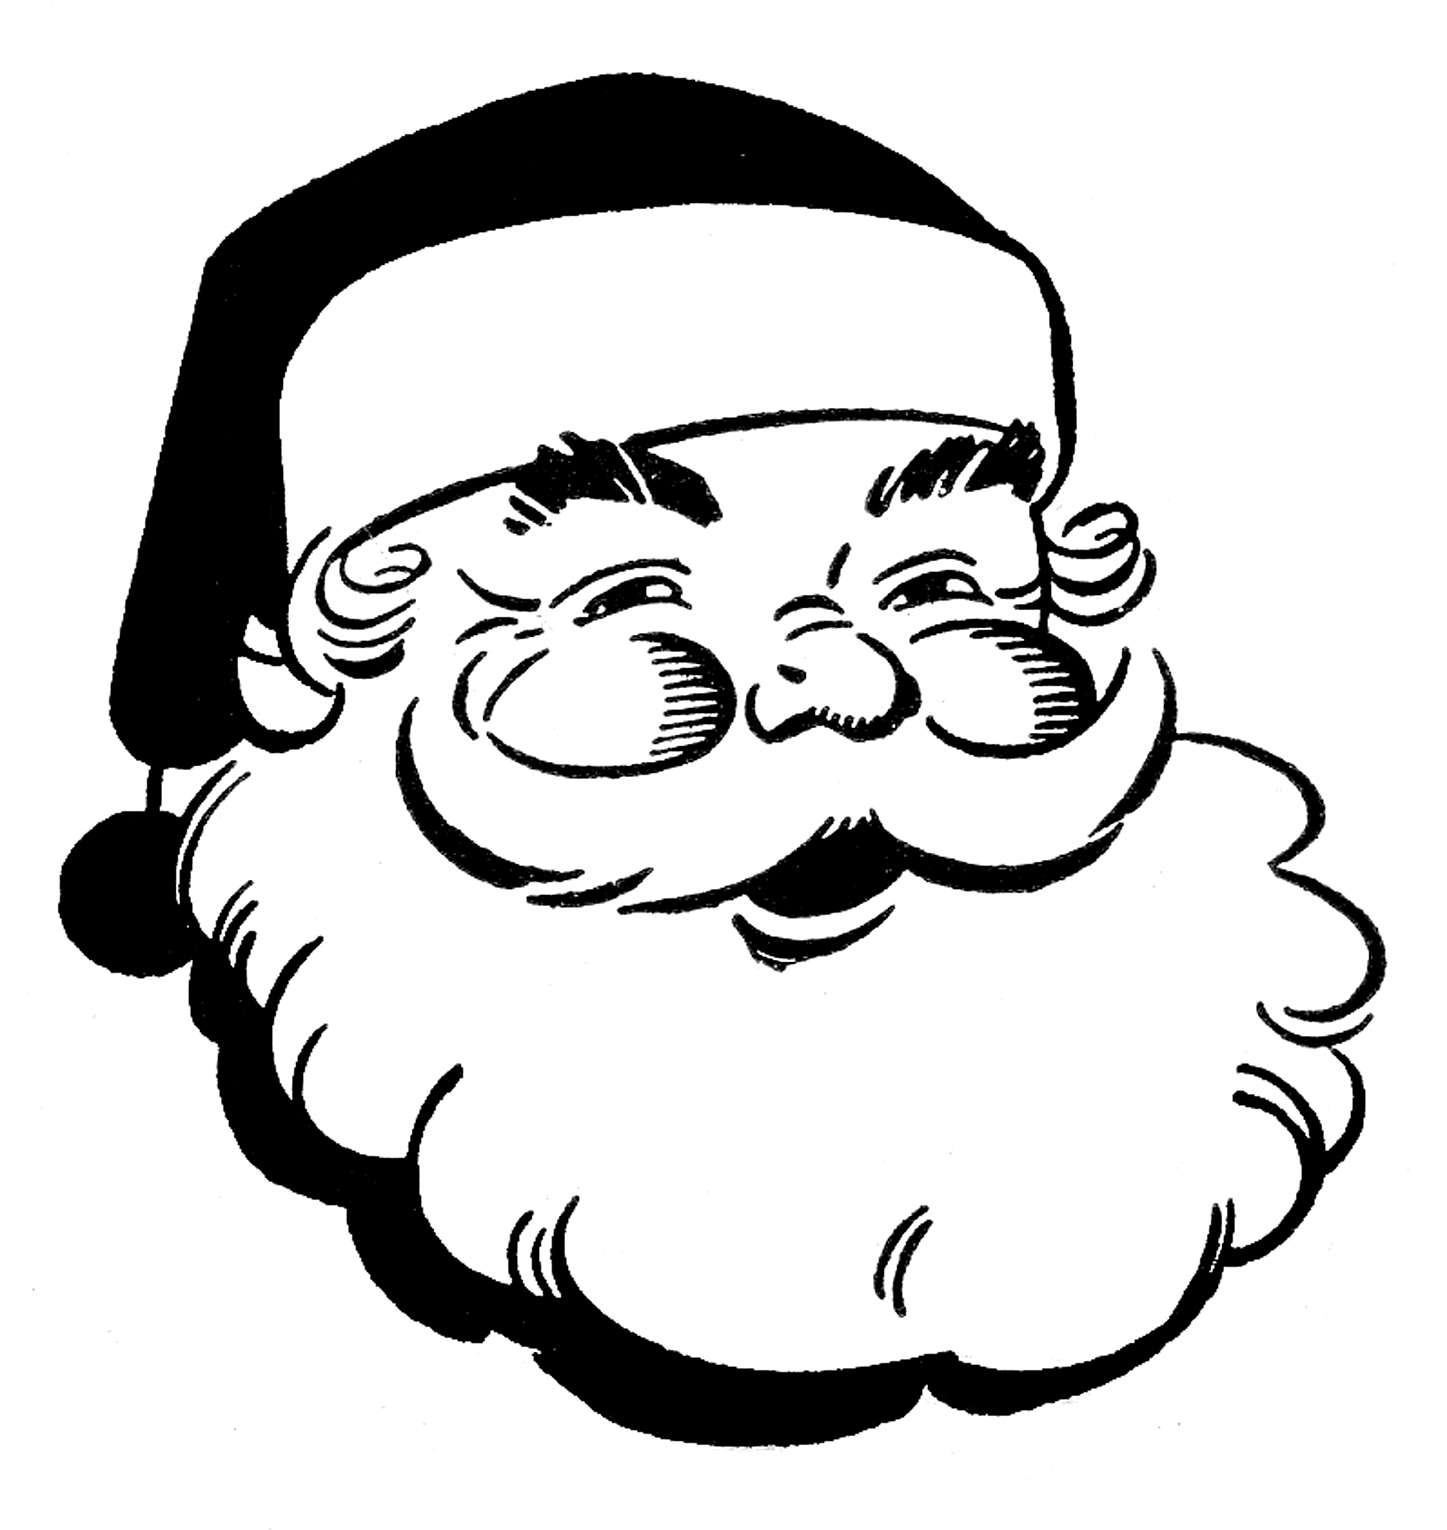 Religious Christmas Clipart Black And Wh-Religious Christmas Clipart Black And White Clipart Panda Free-17